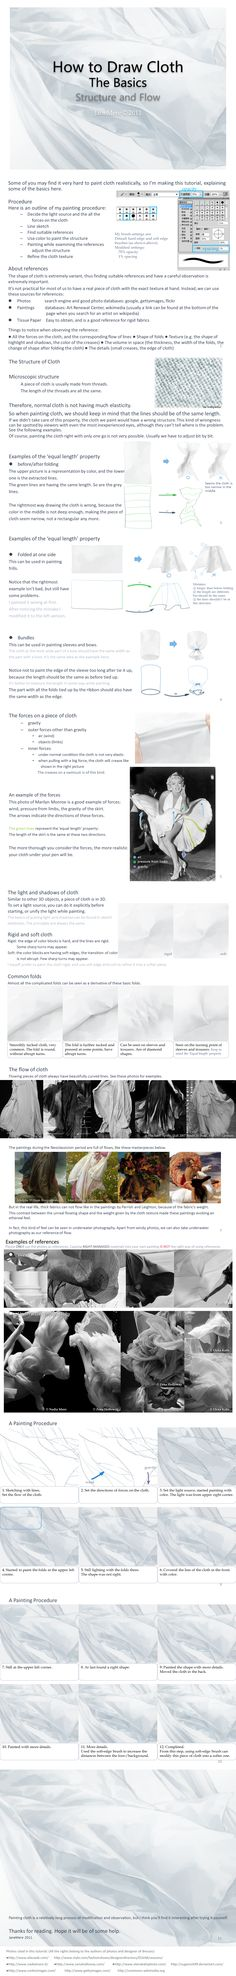 A very good Cloth tutorial.    How to Draw Cloth - The Basics by ~JaneMere on deviantART  http://janemere.deviantart.com/art/How-to-Draw-Cloth-The-Basics-213019261#